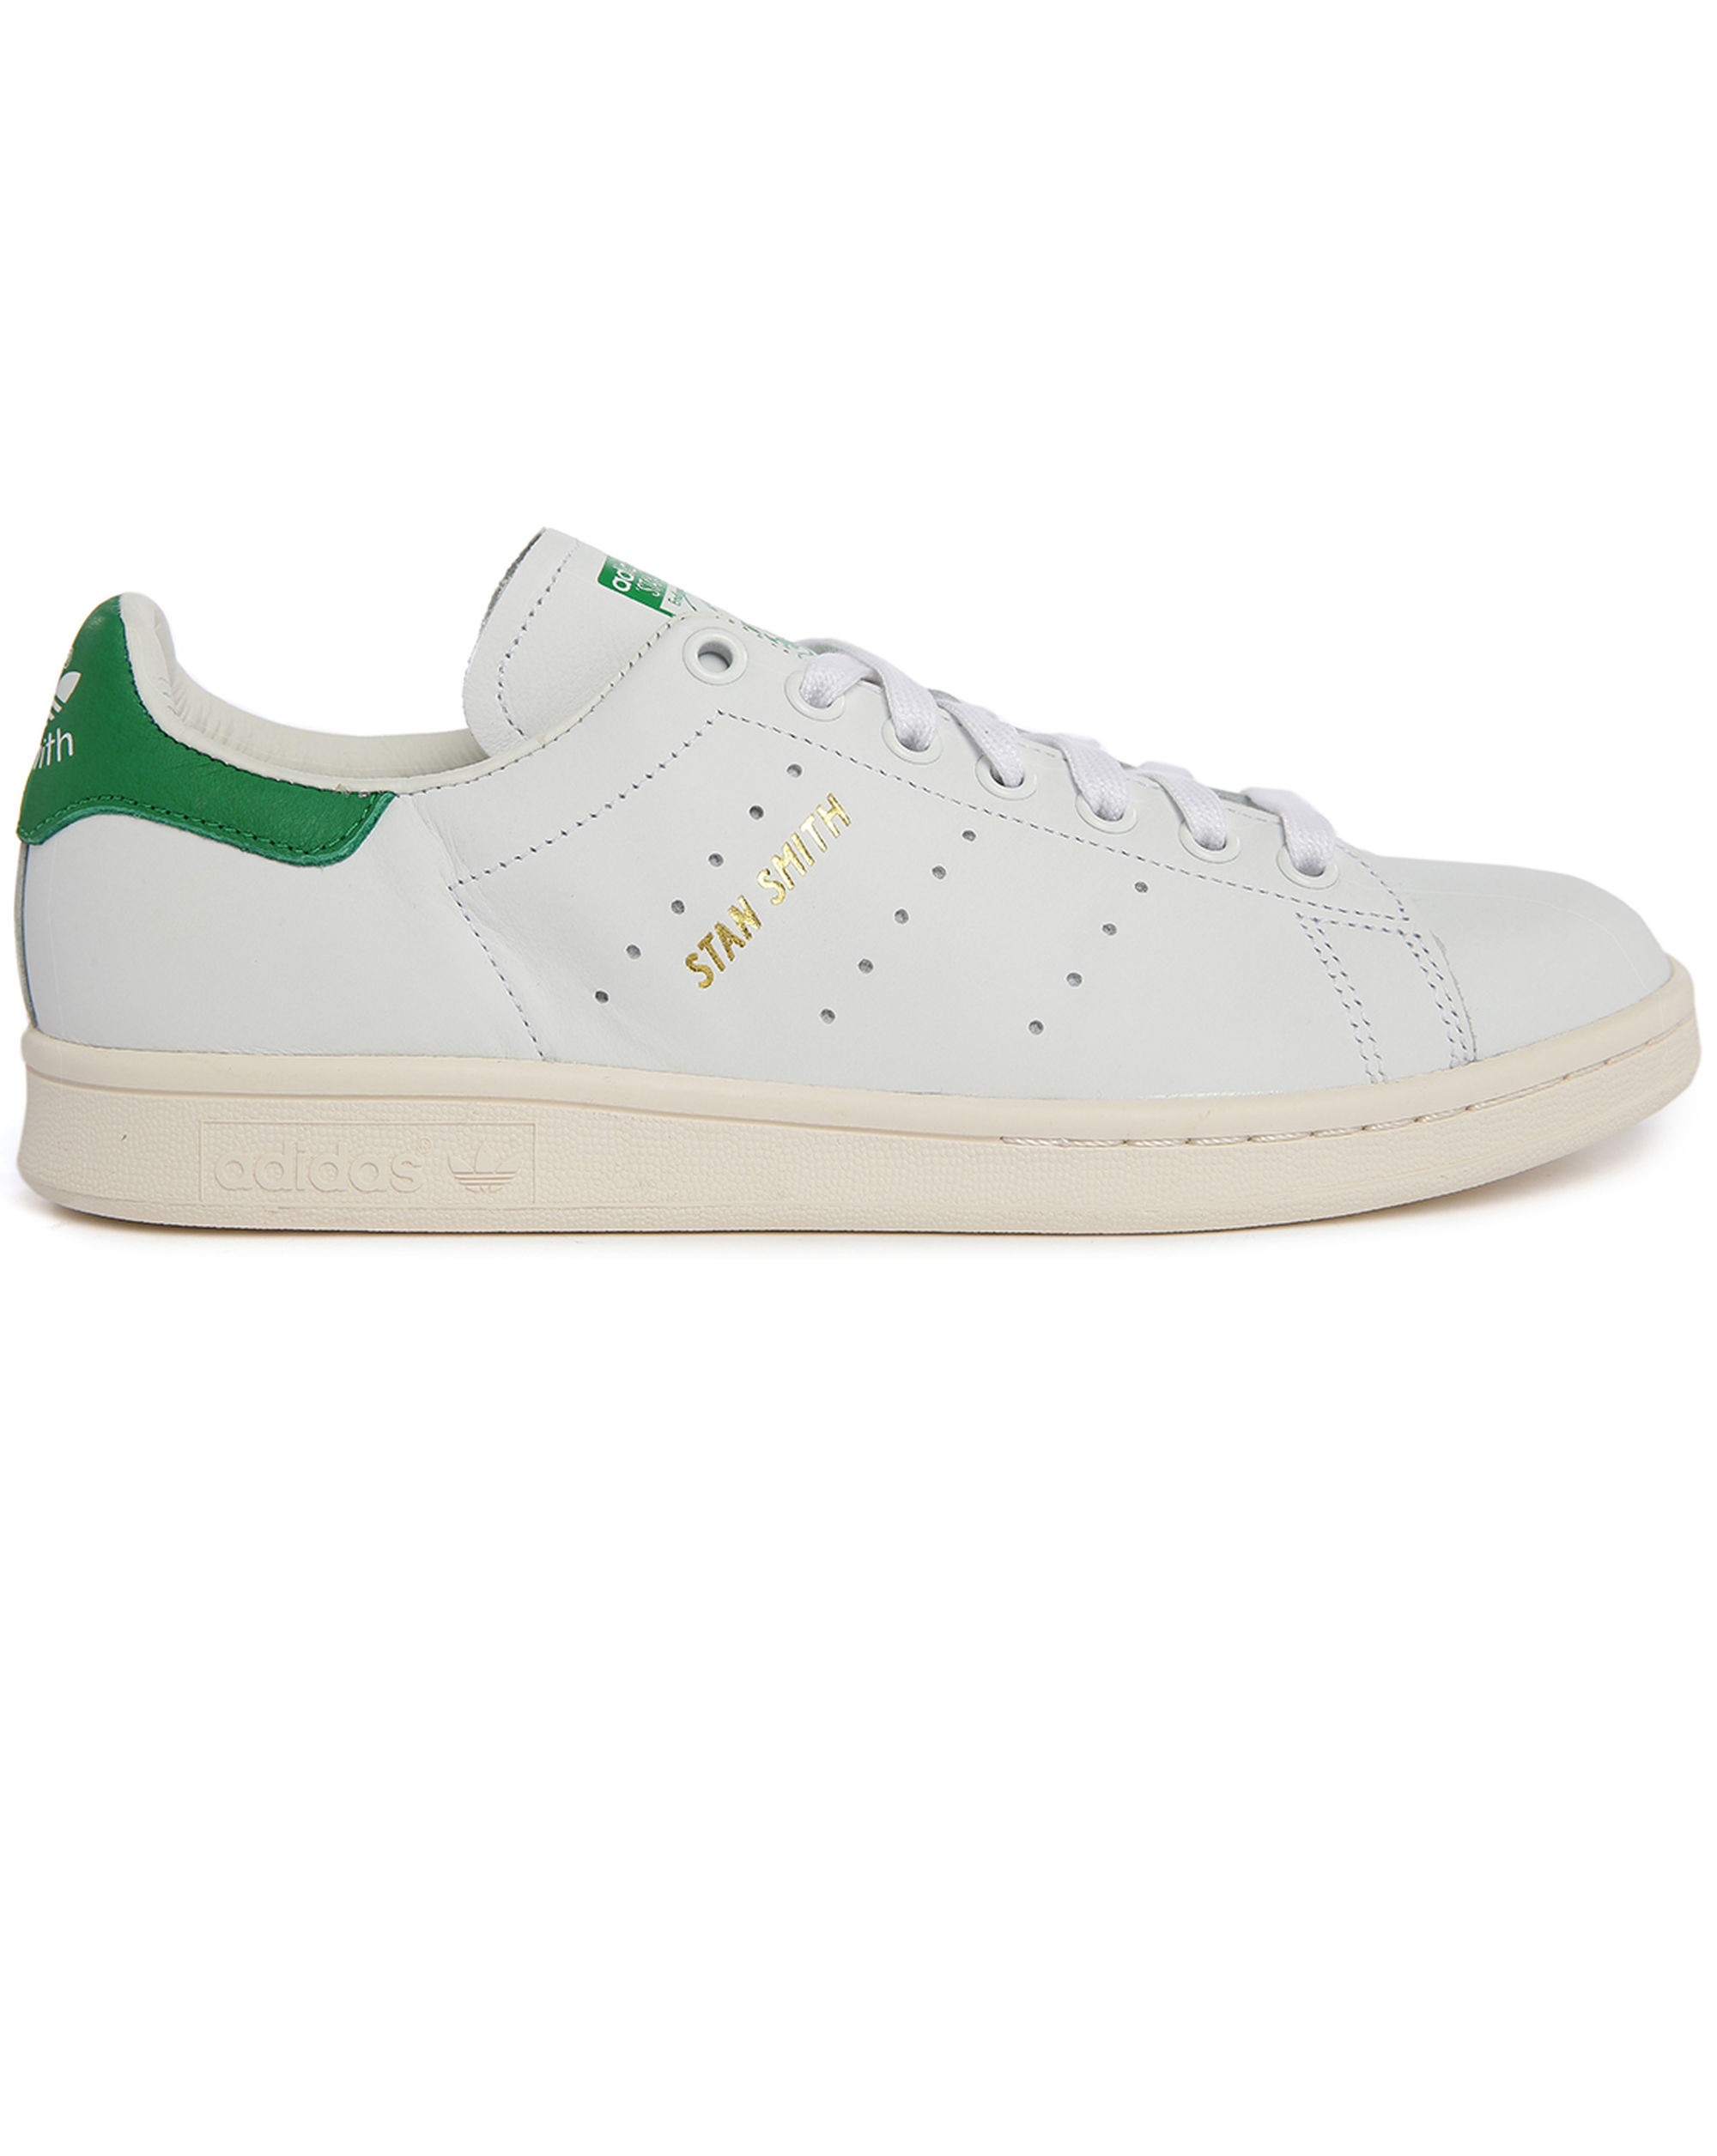 adidas originals white stan smith sneakers in green for men lyst. Black Bedroom Furniture Sets. Home Design Ideas